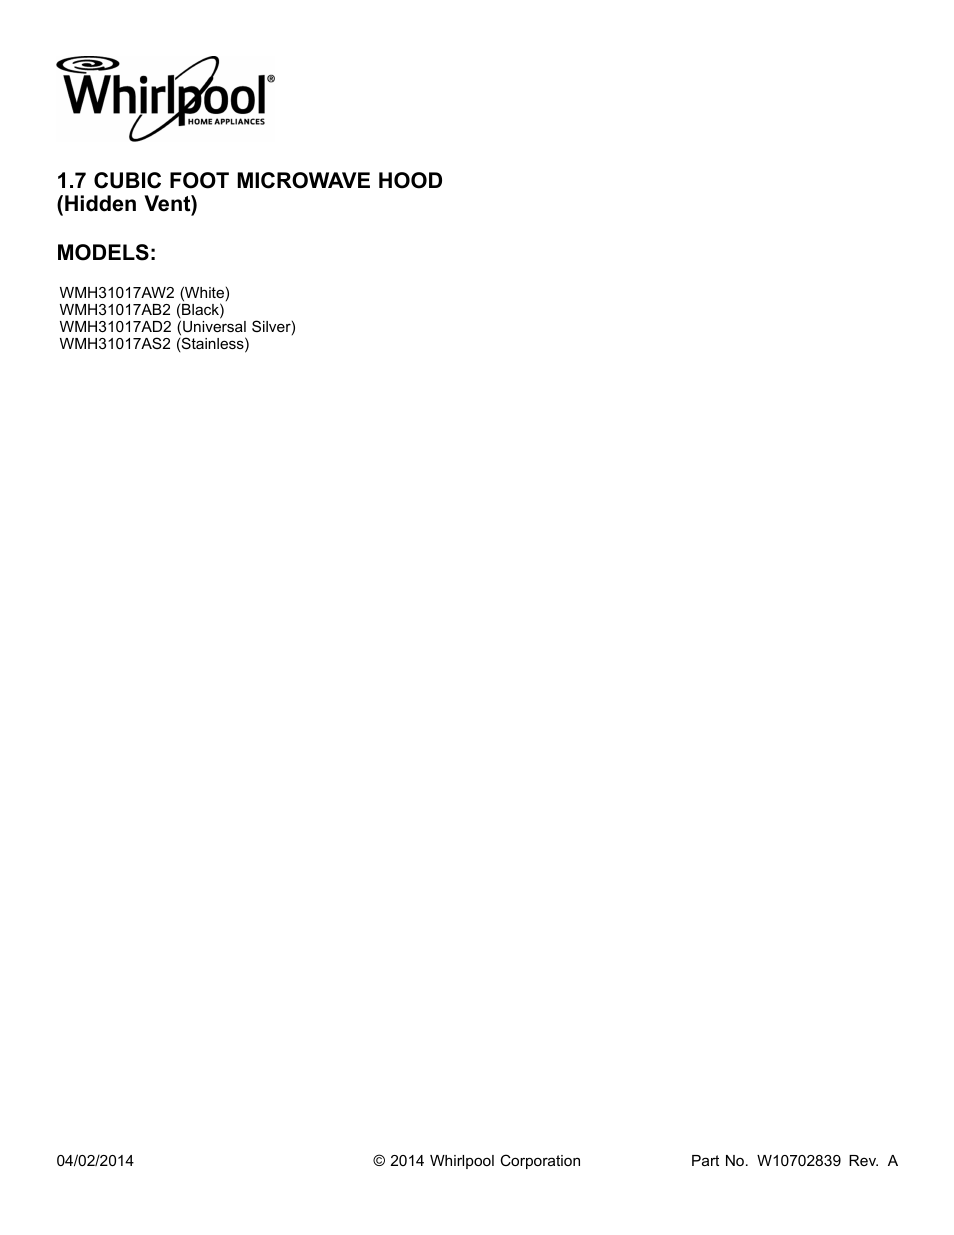 Whirlpool Wmh31017as User Manual 13 Pages